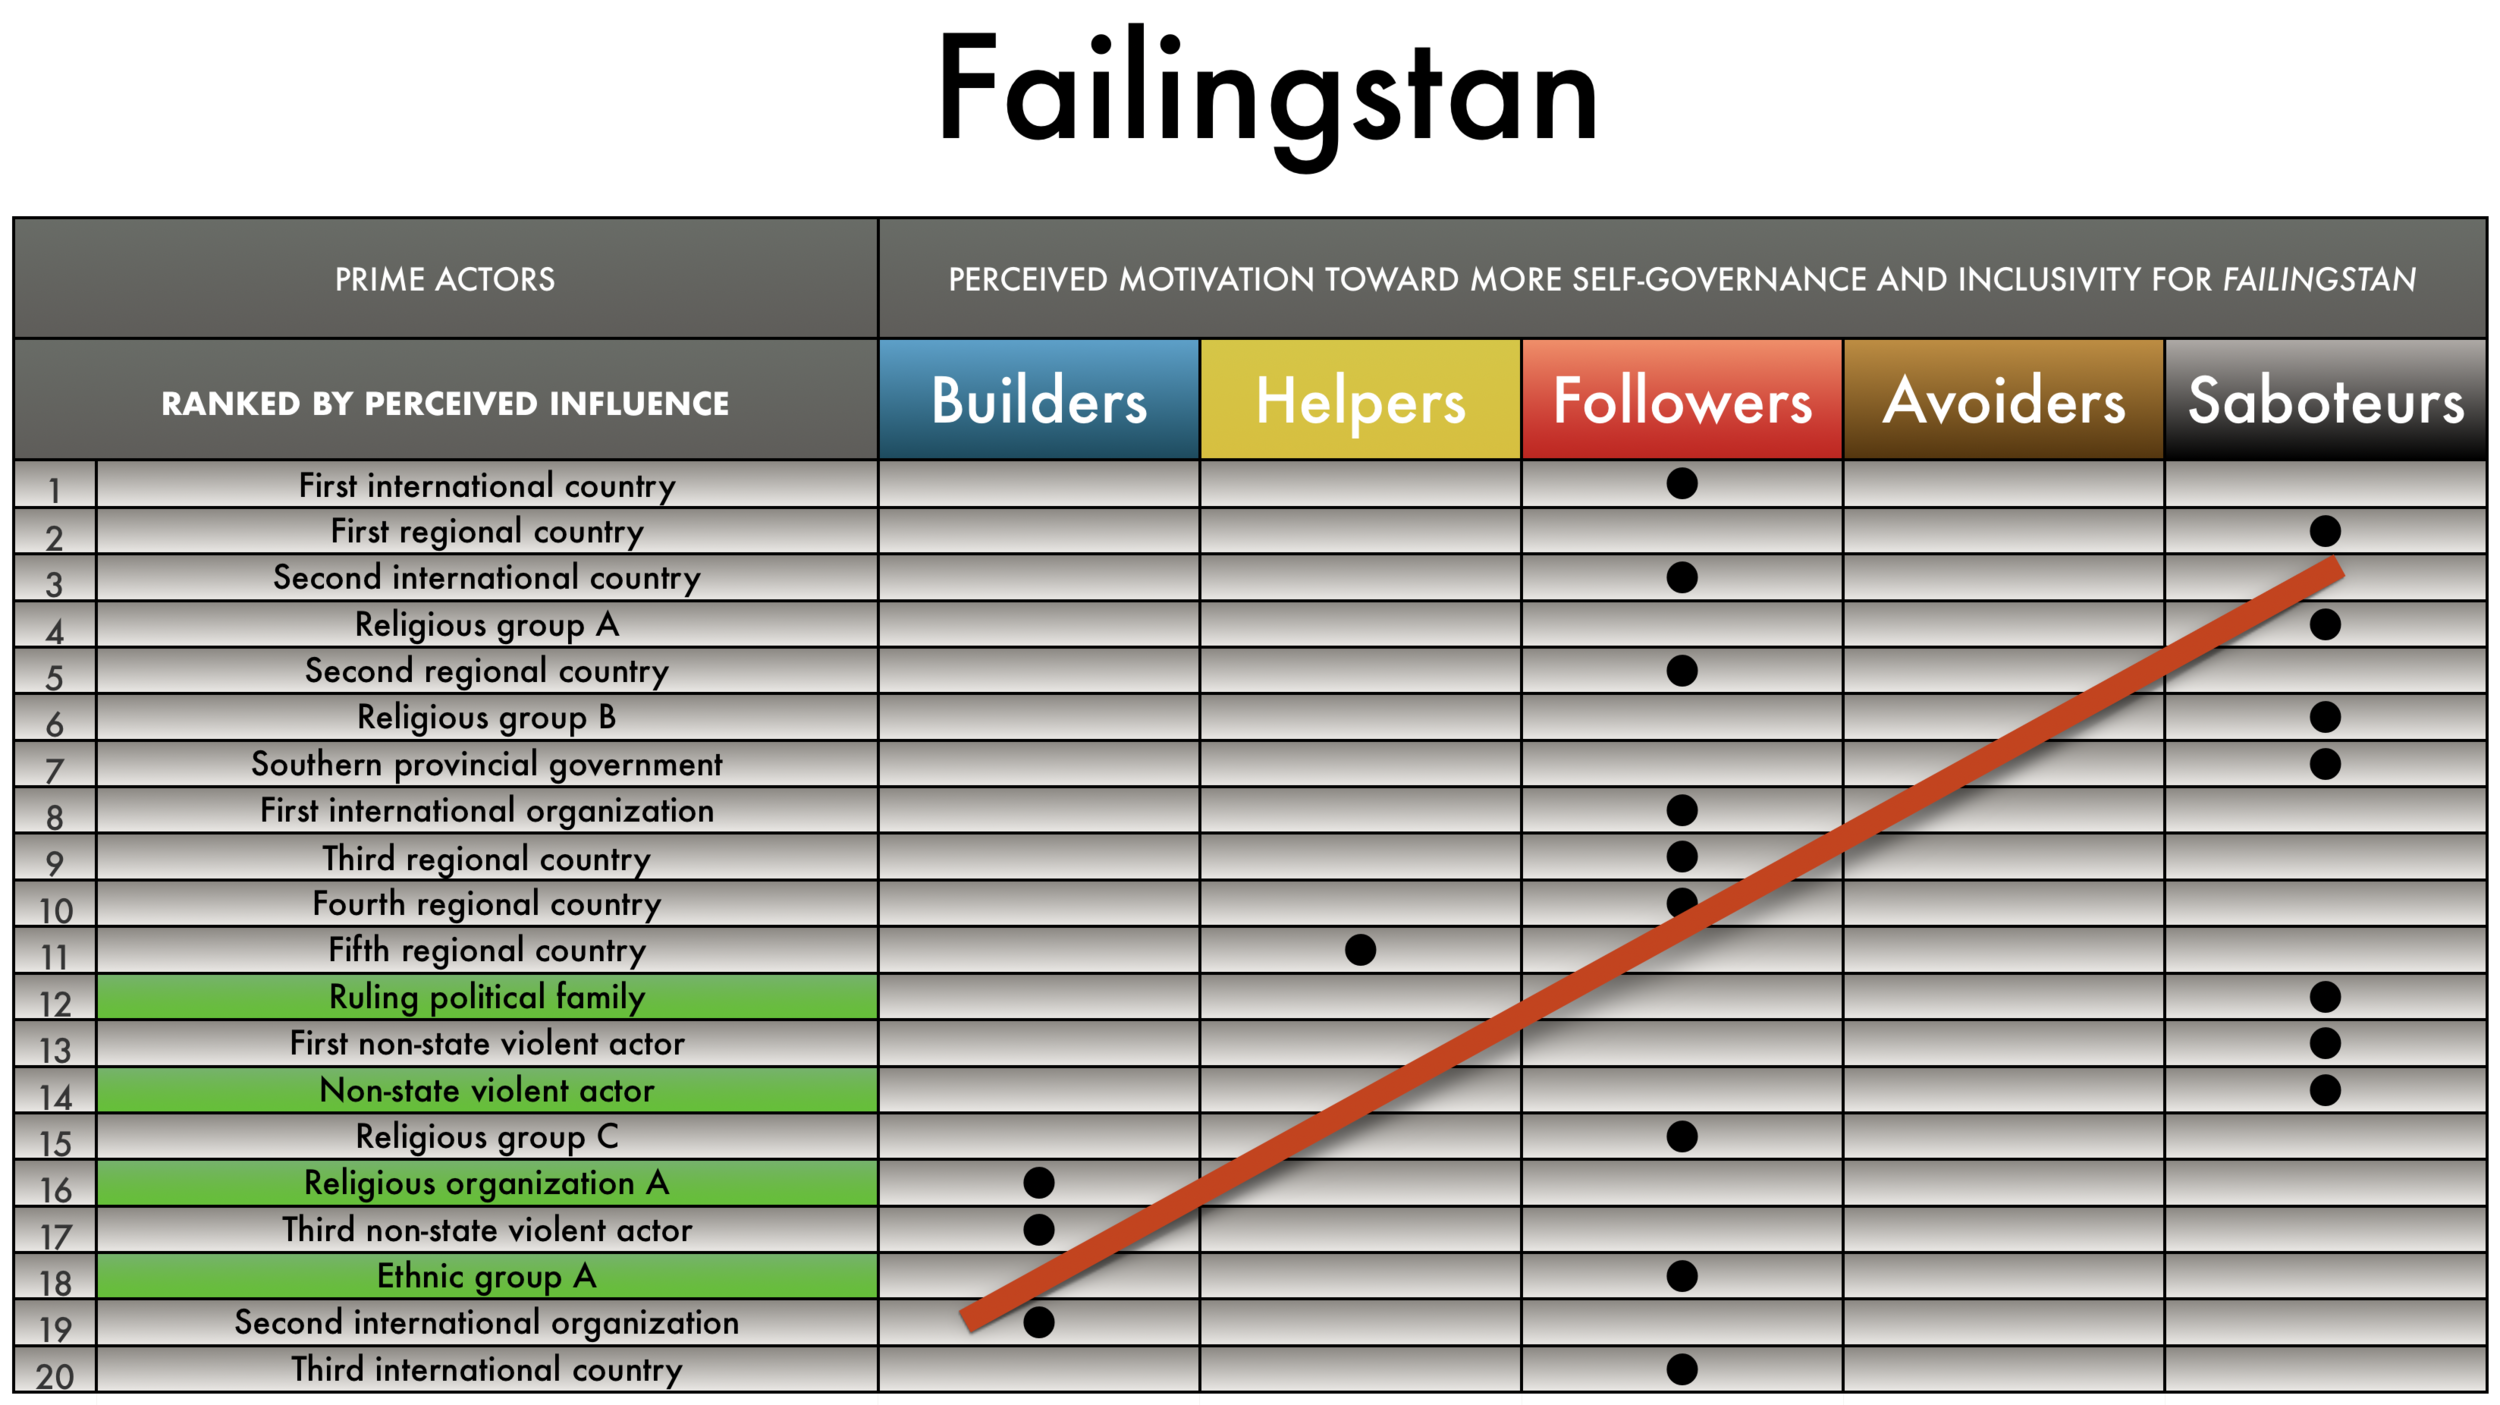 In  Failingstan , only a few of its prime actors are from the country itself. The most influential actors are also the ones who want to help the country the least (saboteurs).